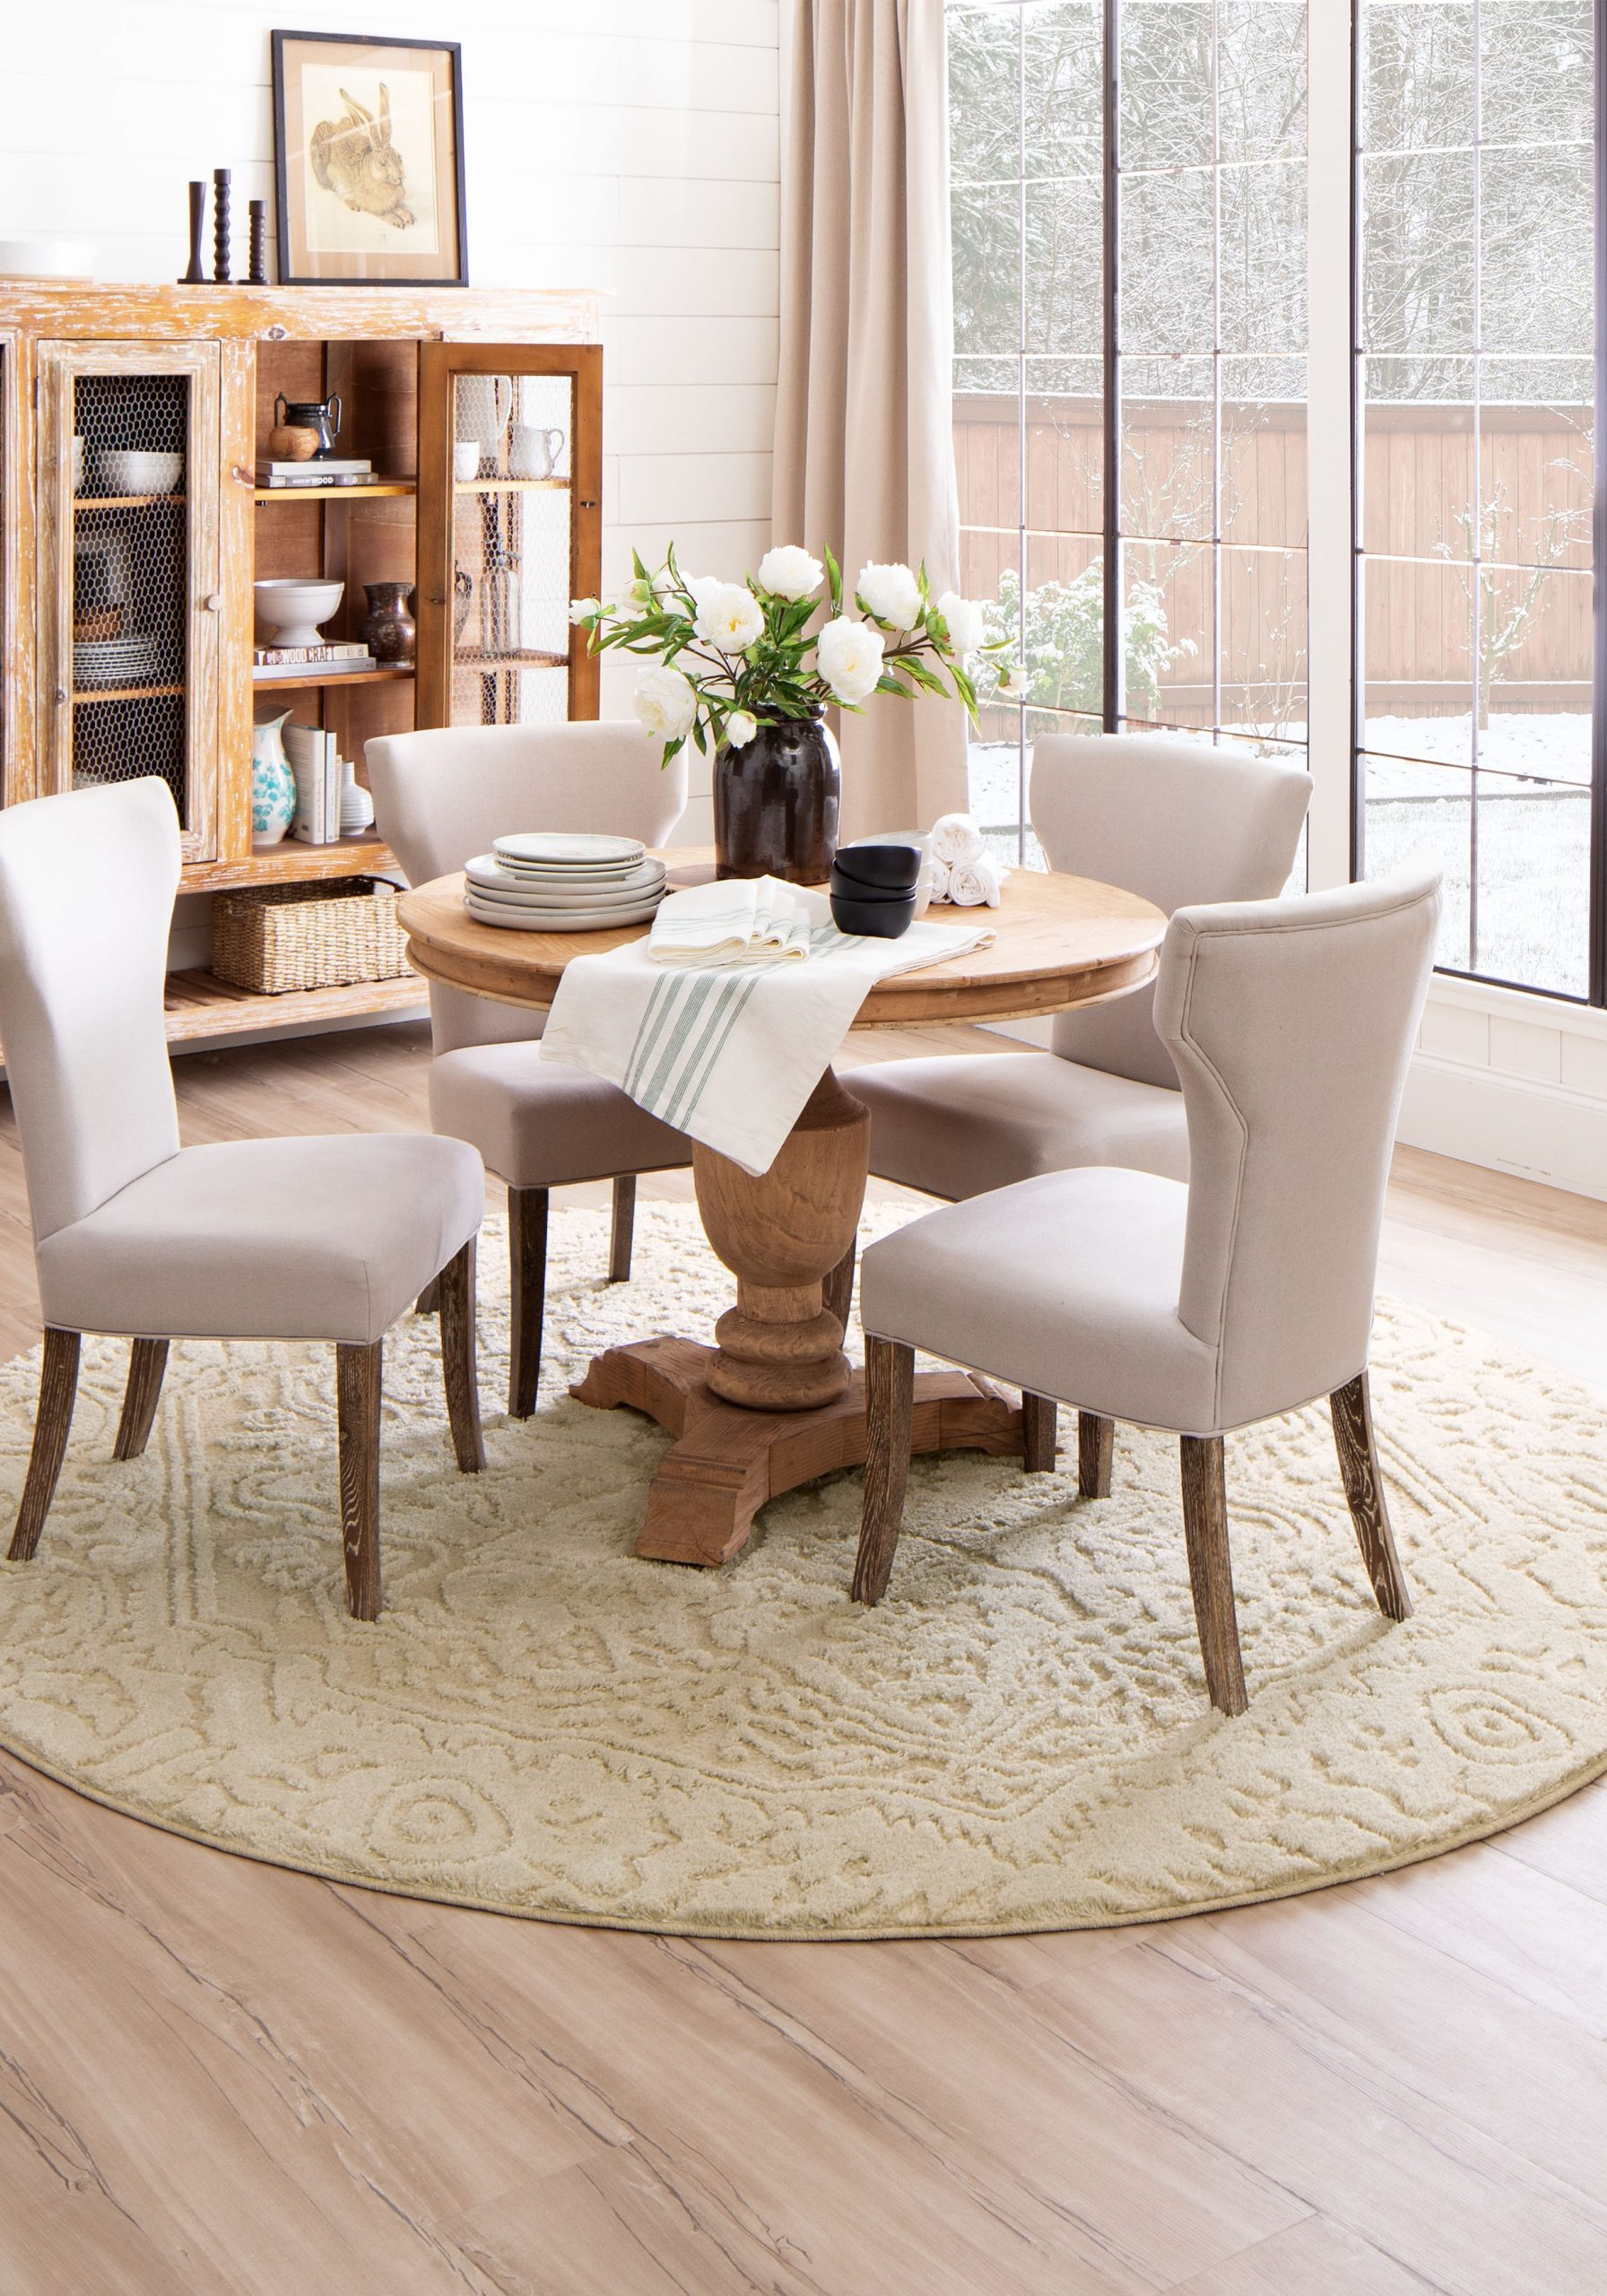 Small dining table | Great Lakes Carpet & Tile